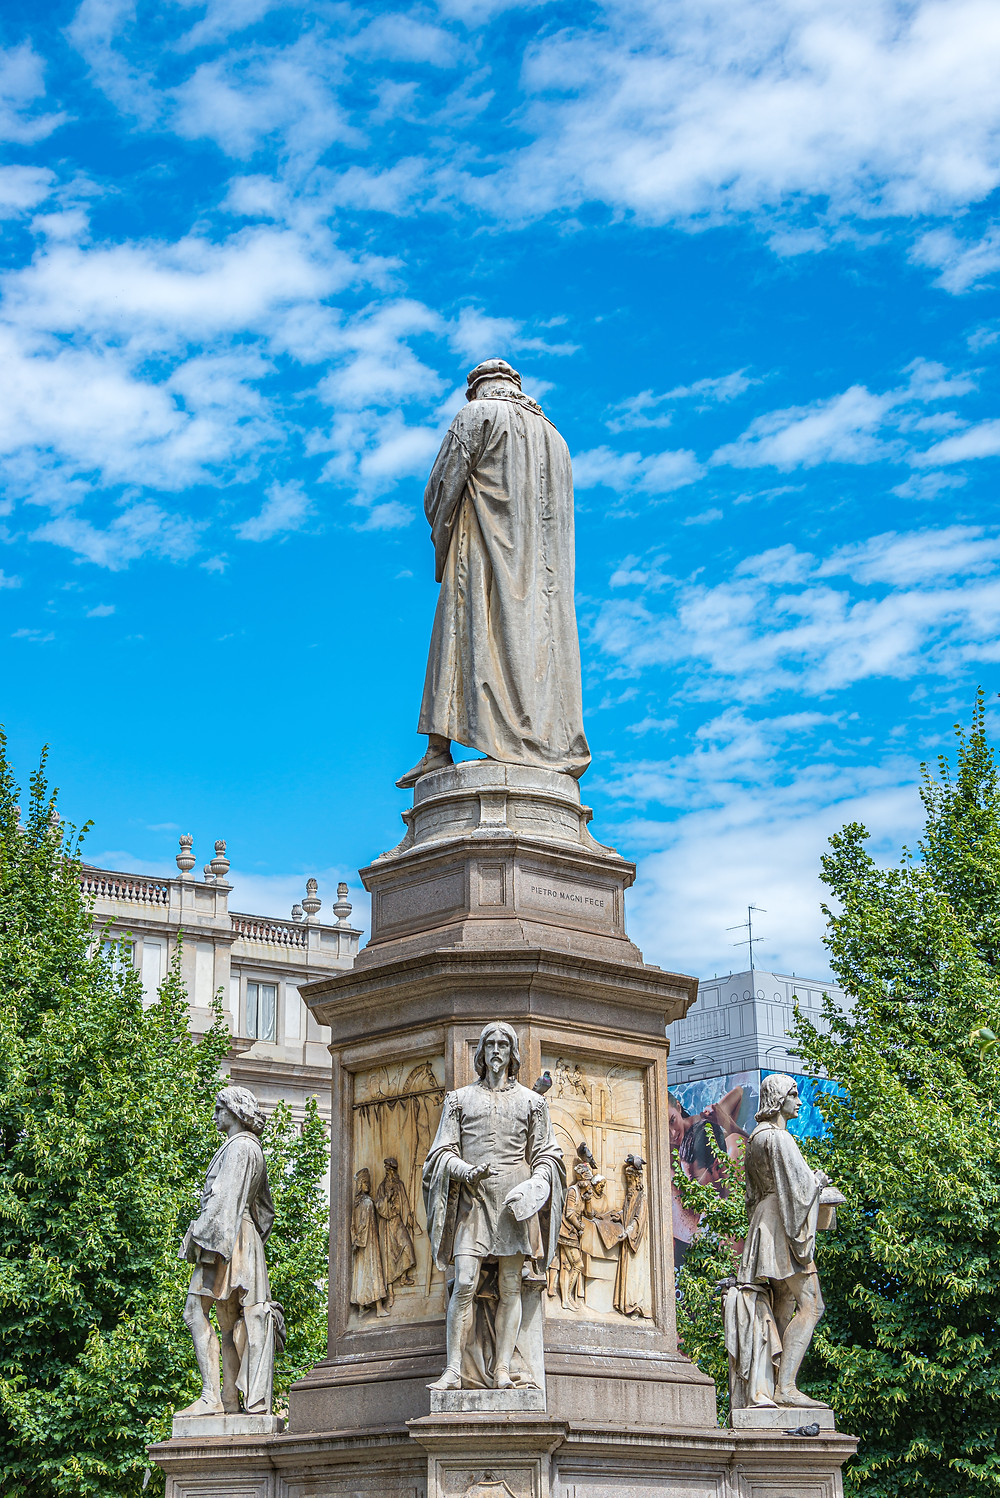 another view of the Leonardo Monument in Milan